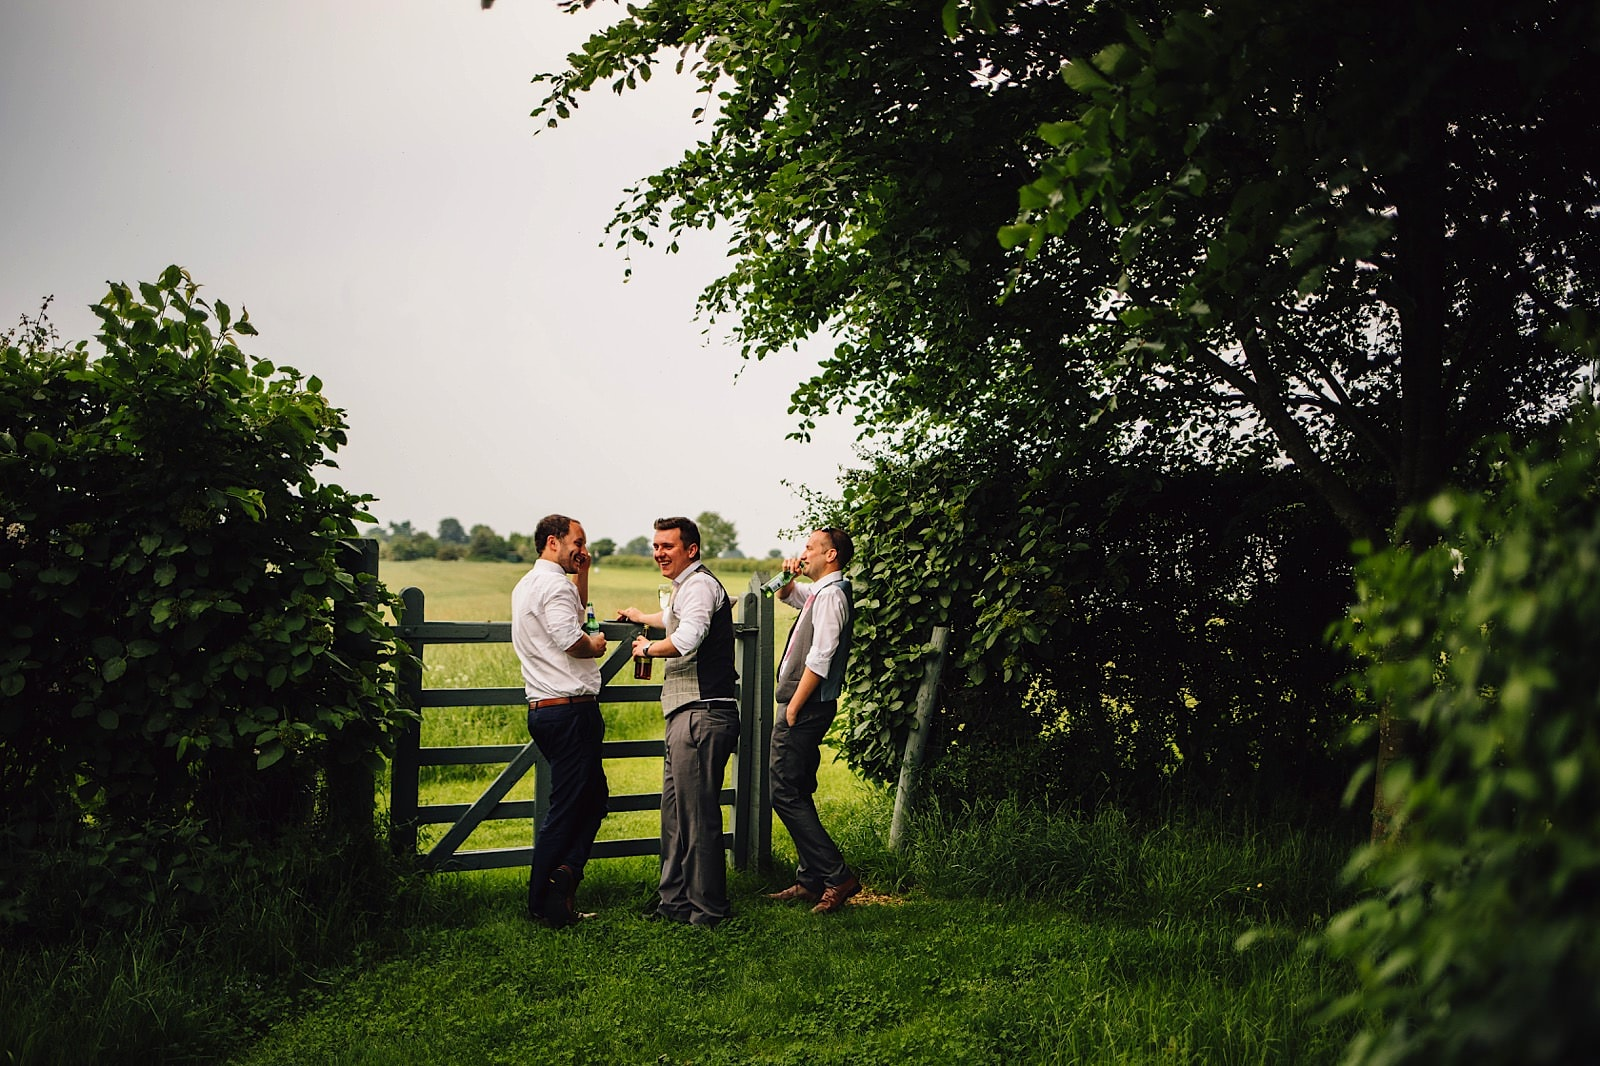 Dovecote barn adderbury wedding photography 090